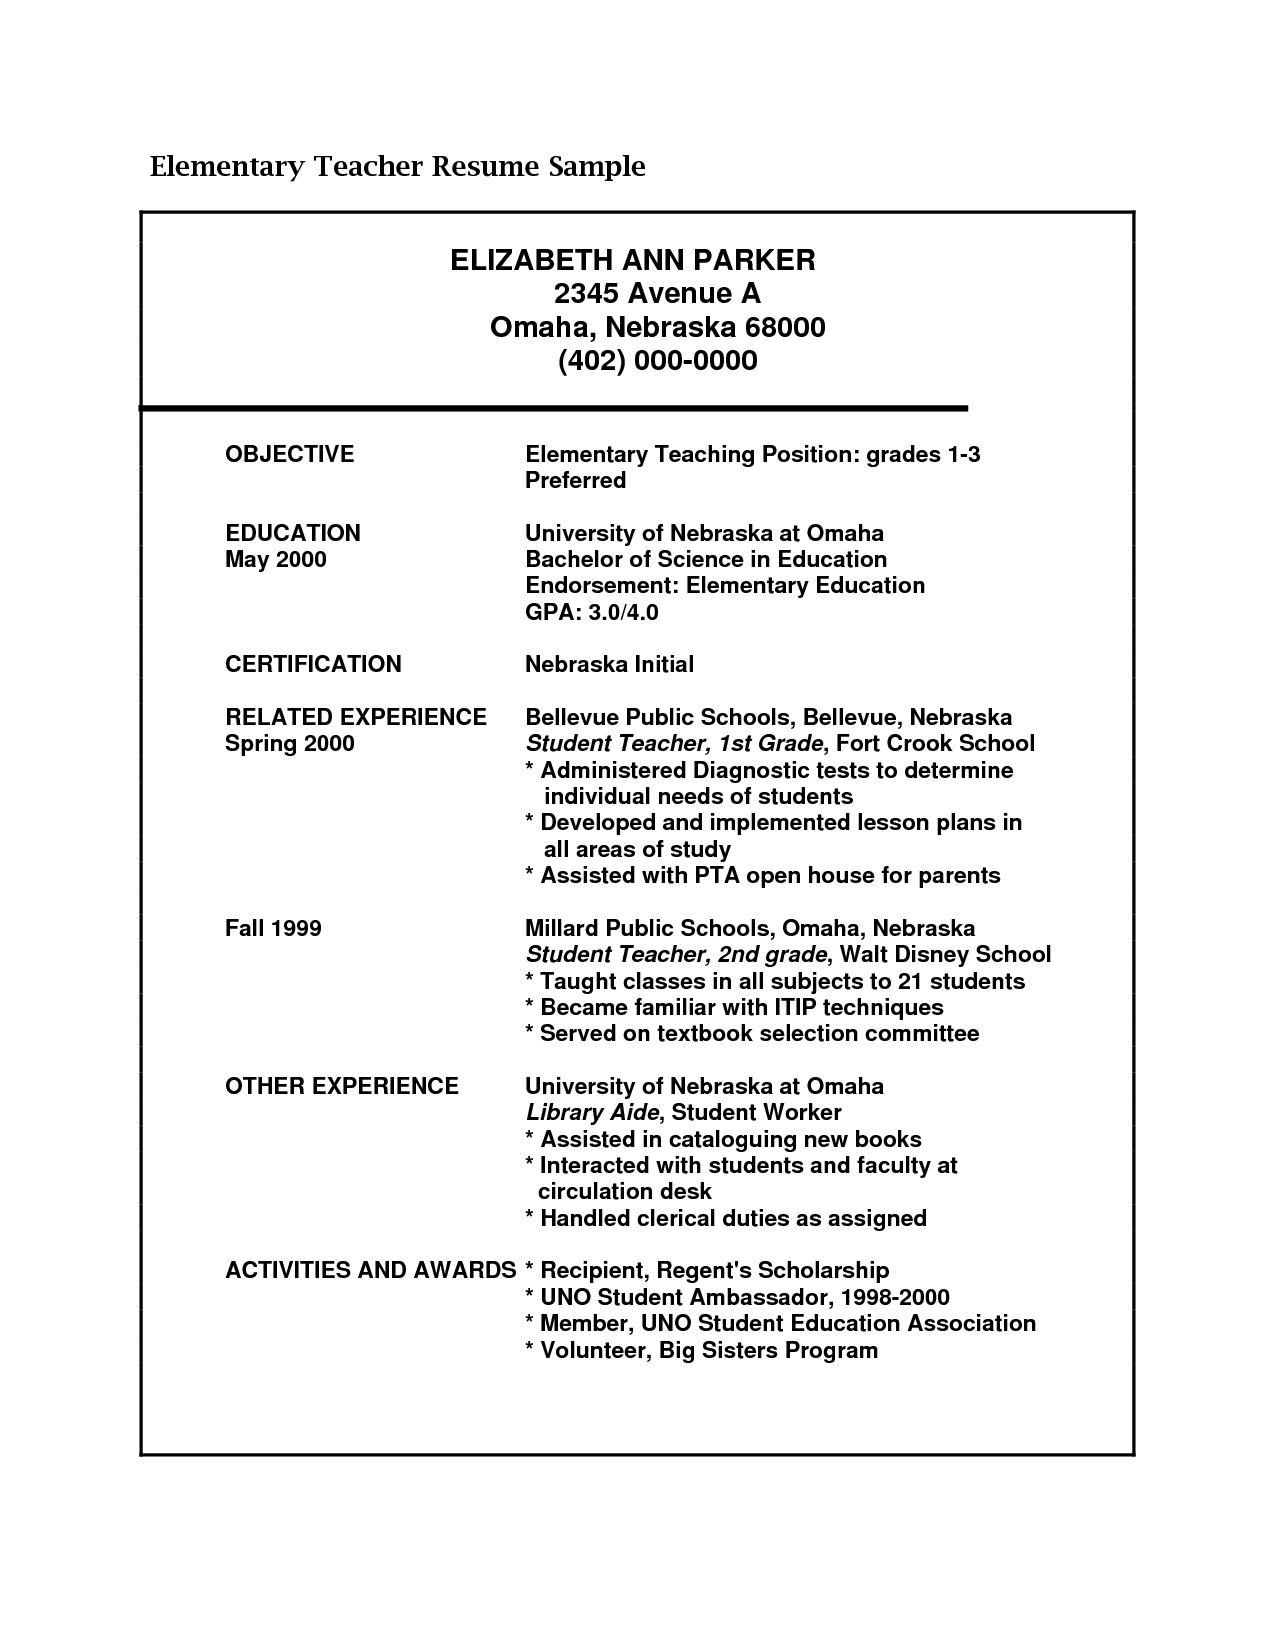 Resume Education Example Stunning Science Teacher Resume Objective  Httpwwwresumecareer Design Inspiration